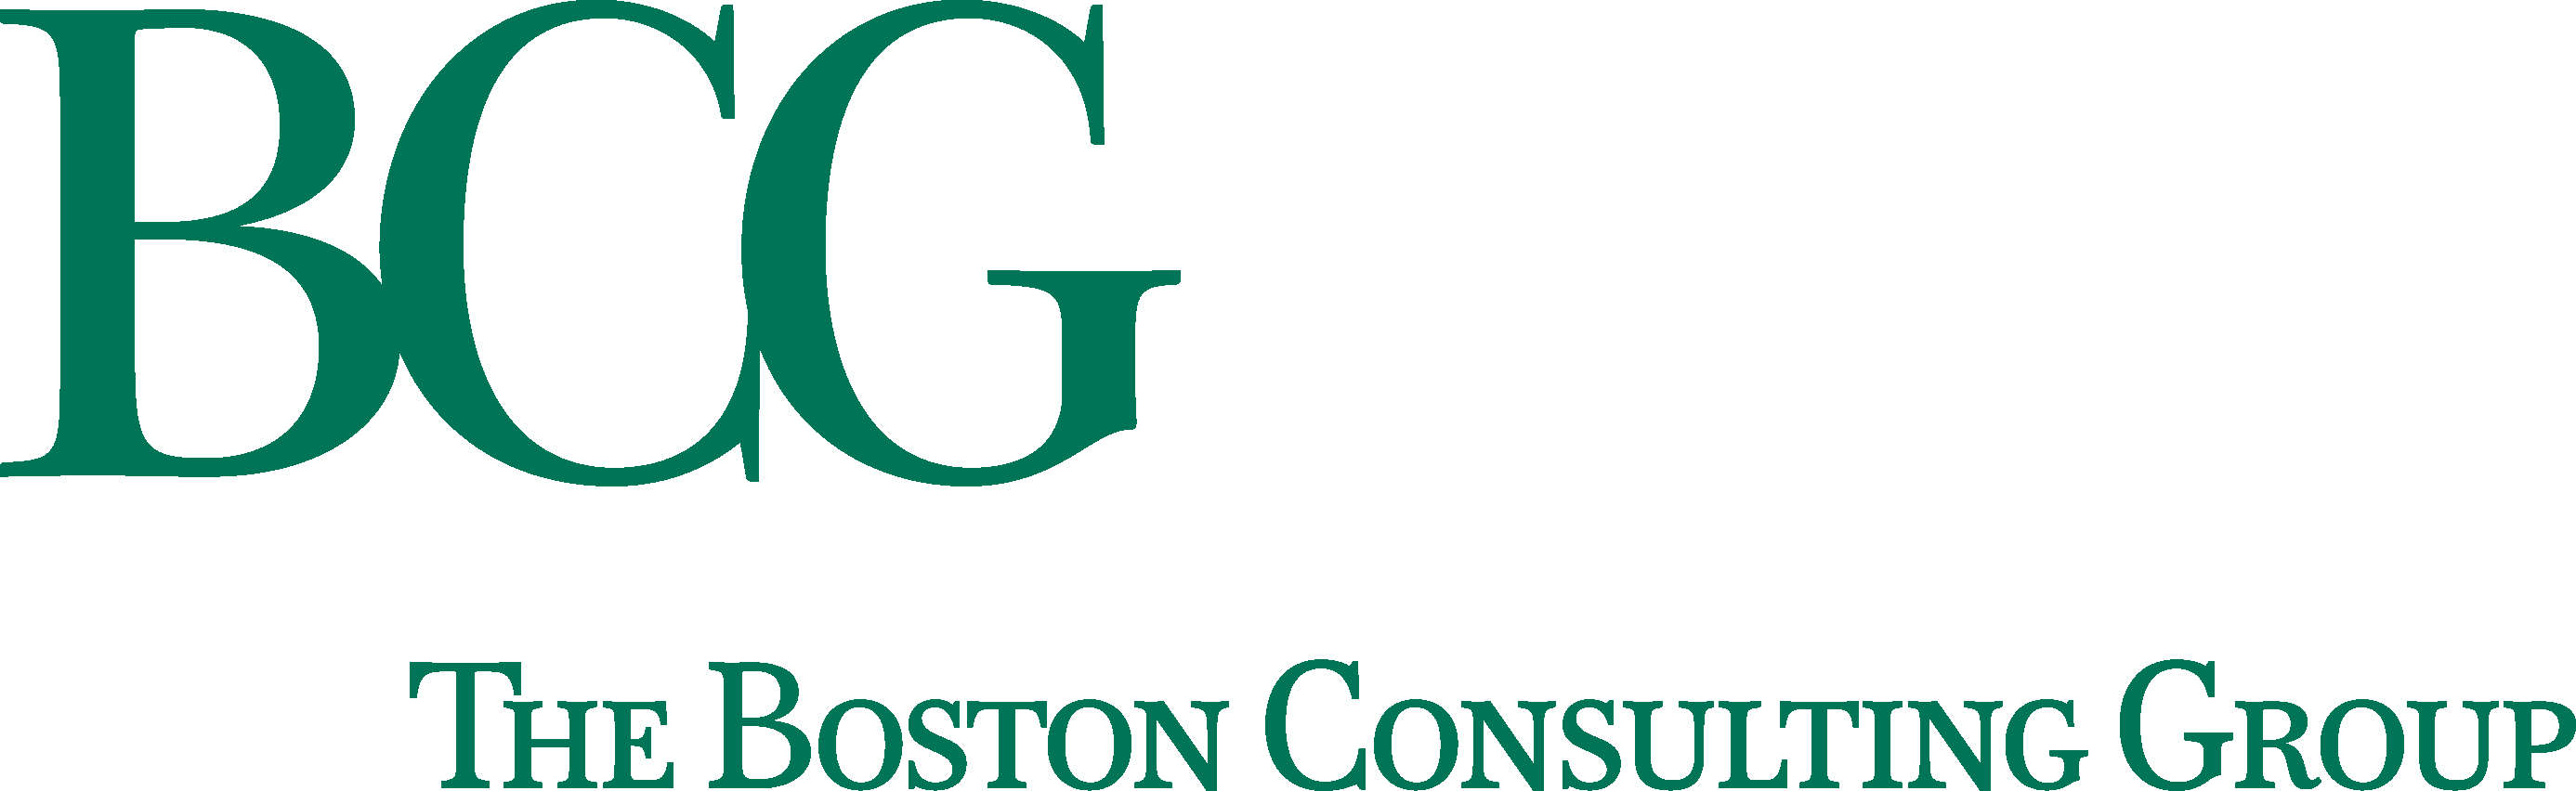 The Boston Consulting Group (BCG) Logo png